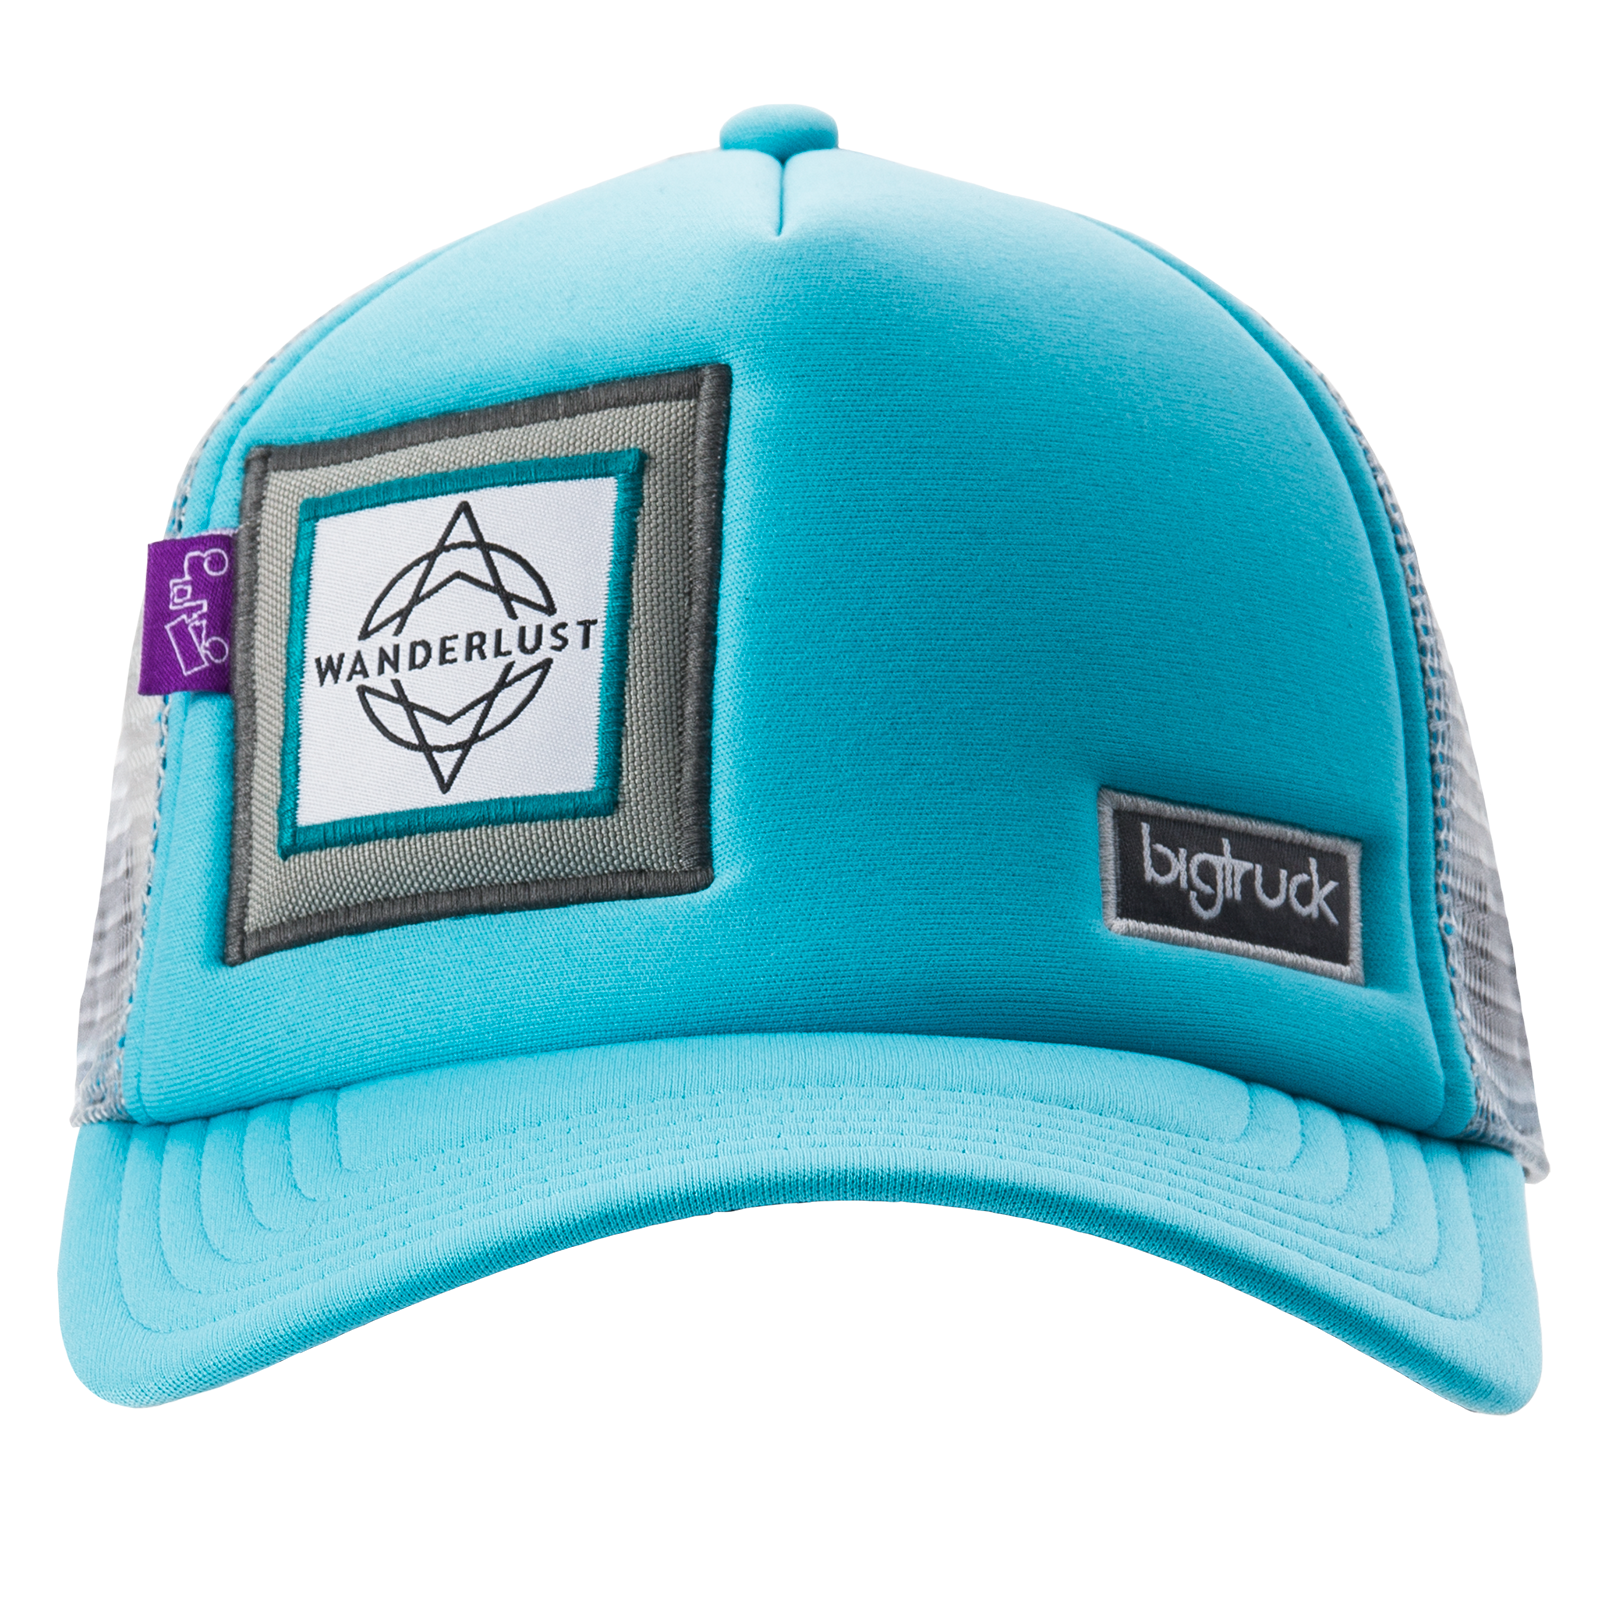 Sky blue grey bigtruck brand trucker hat wanderlust